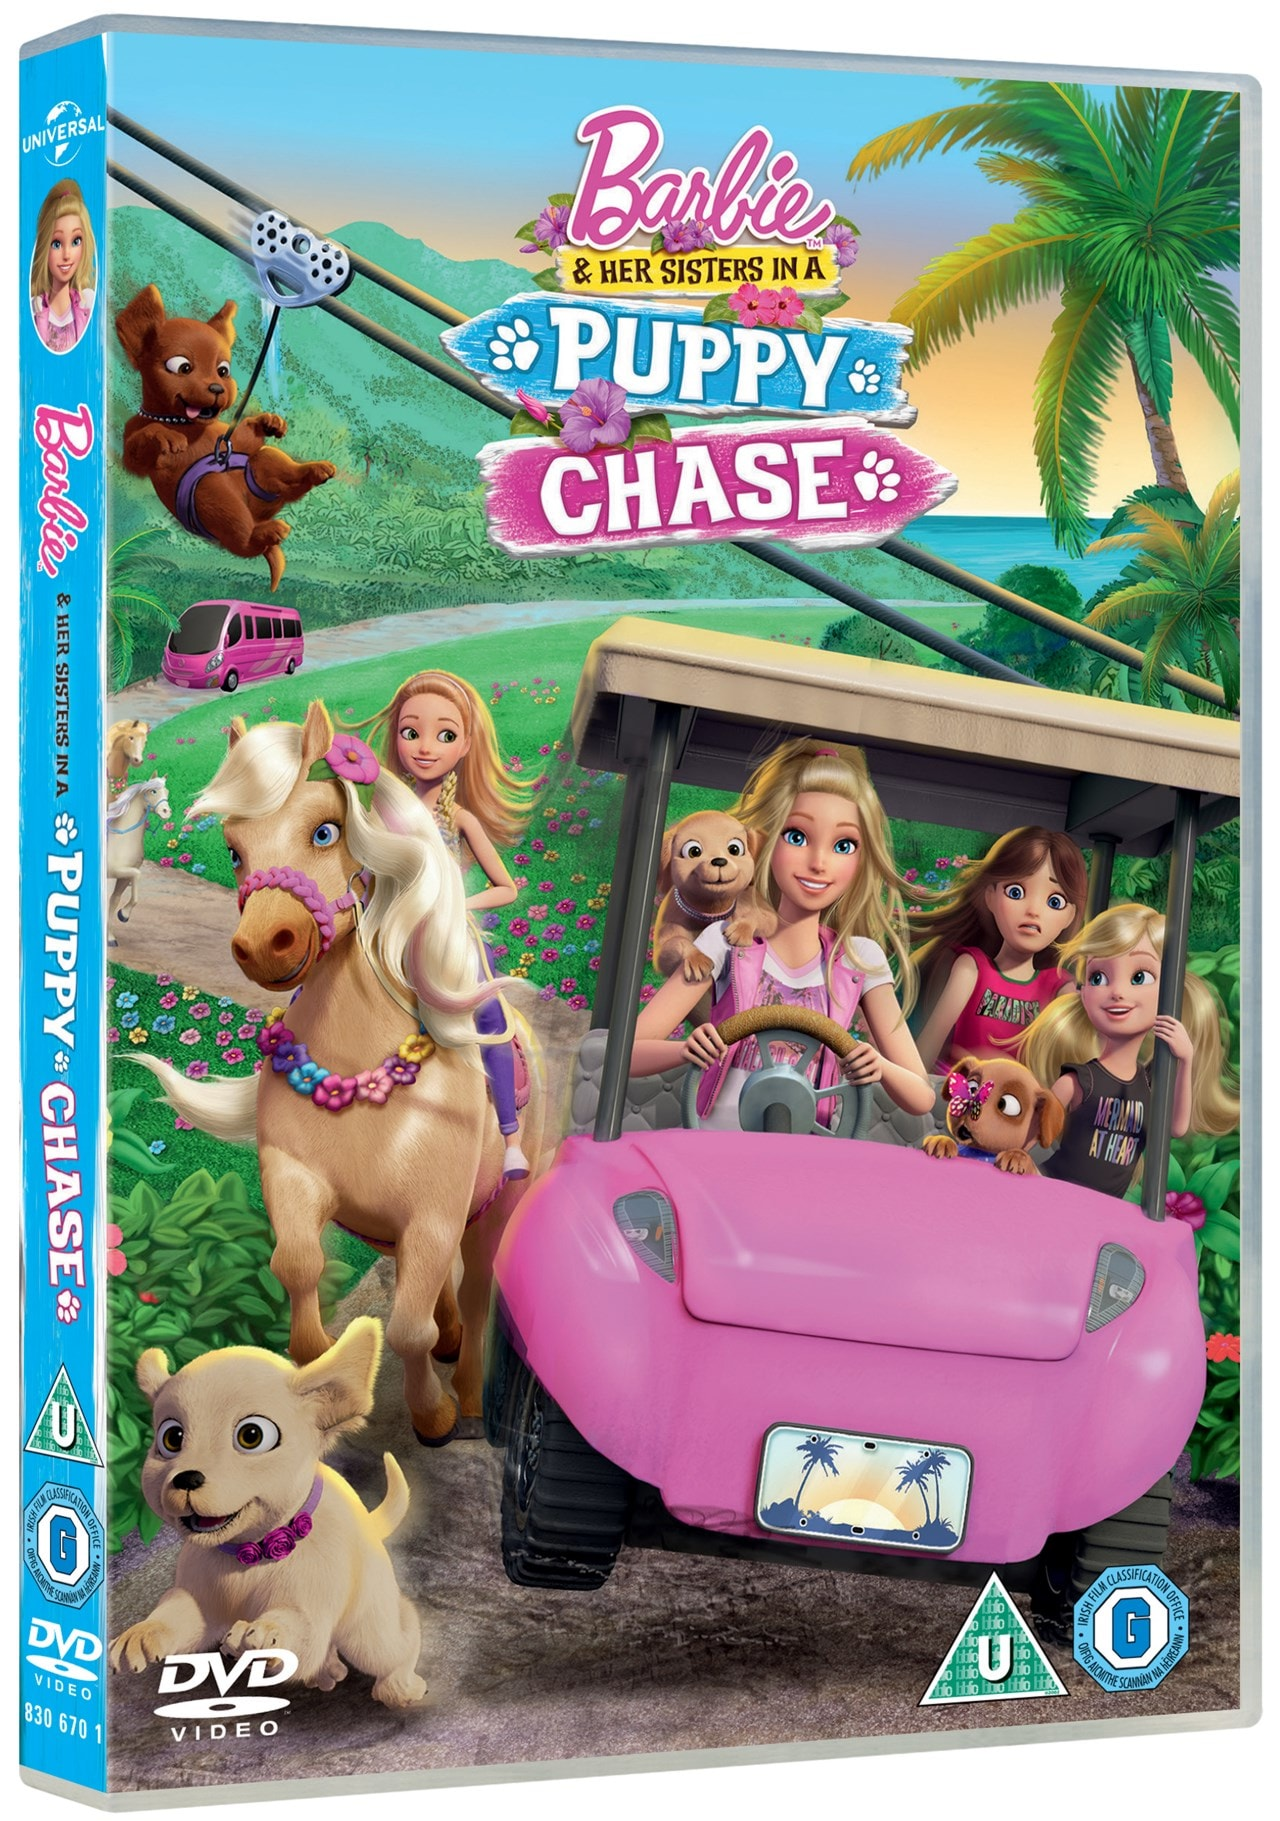 Barbie and Her Sisters in a Puppy Chase - 2